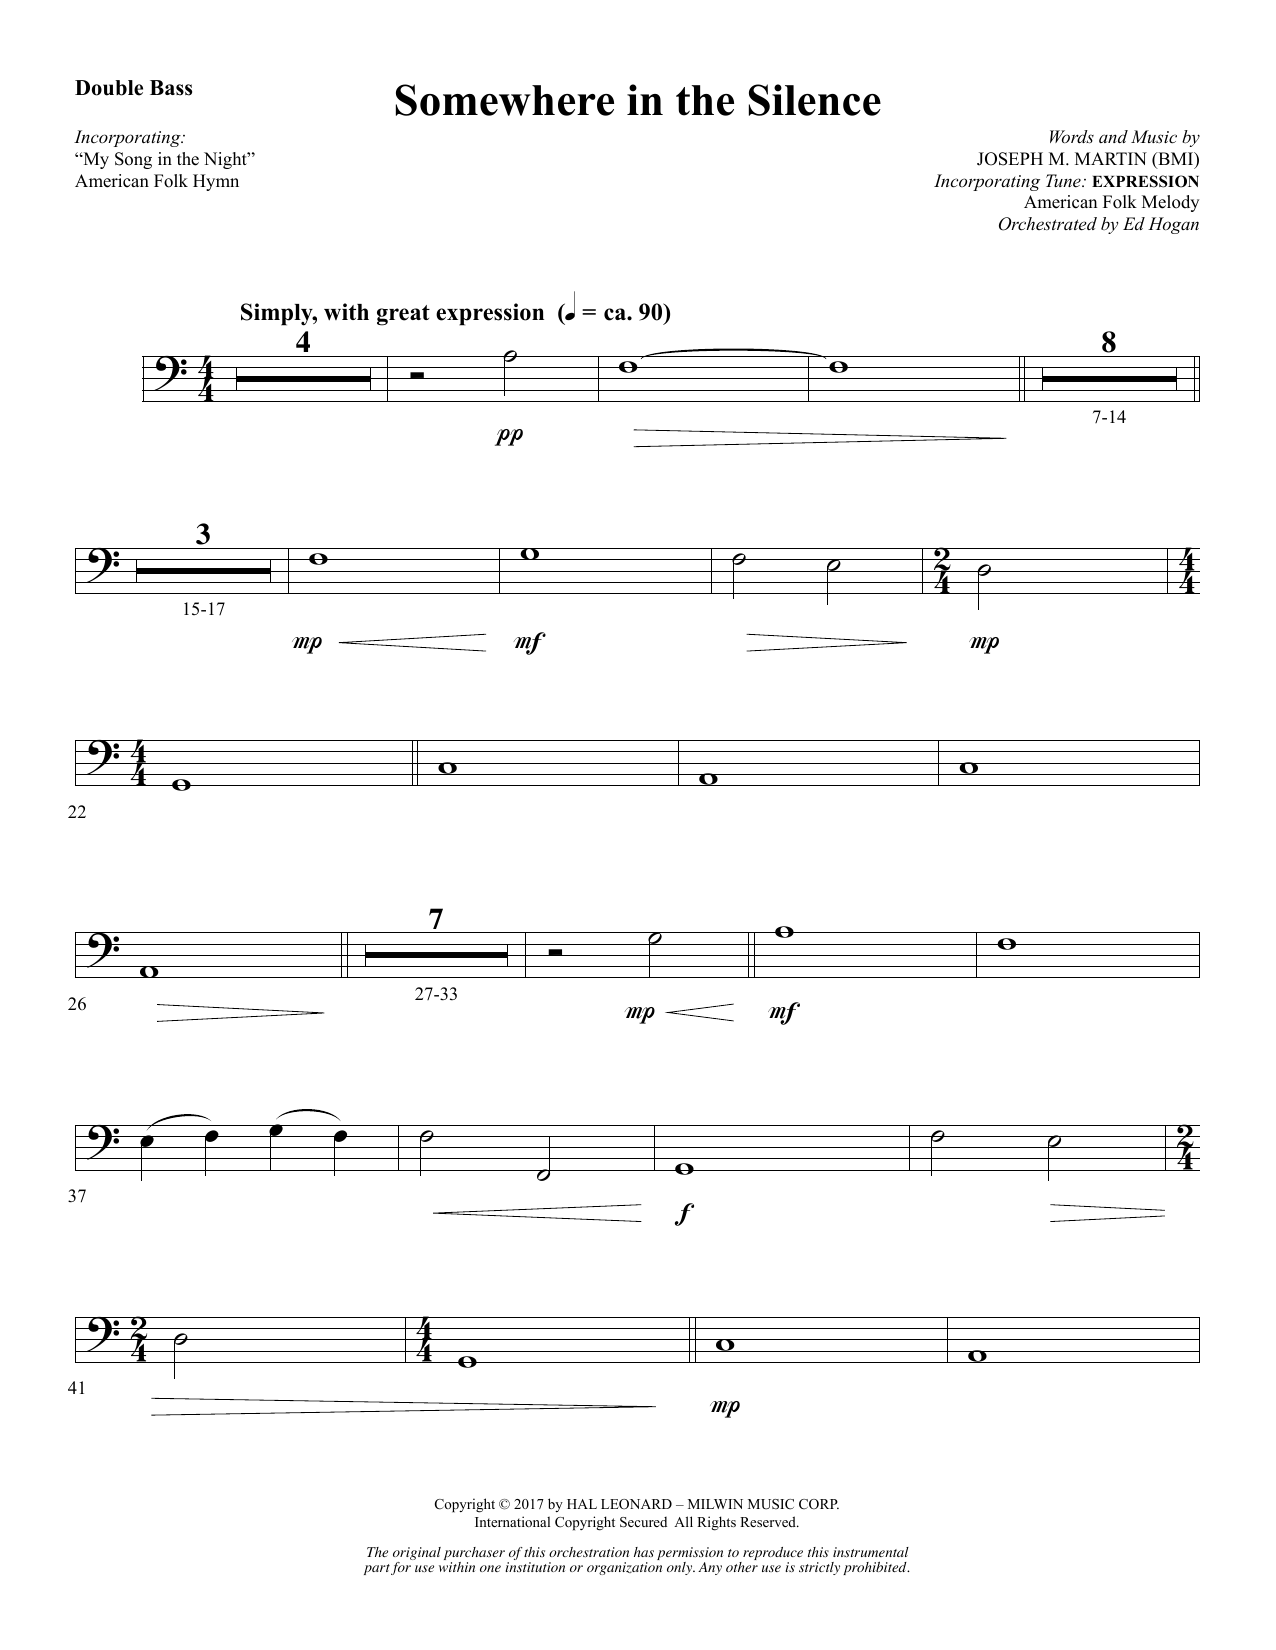 Joseph M. Martin Somewhere in the Silence - Double Bass sheet music notes and chords. Download Printable PDF.